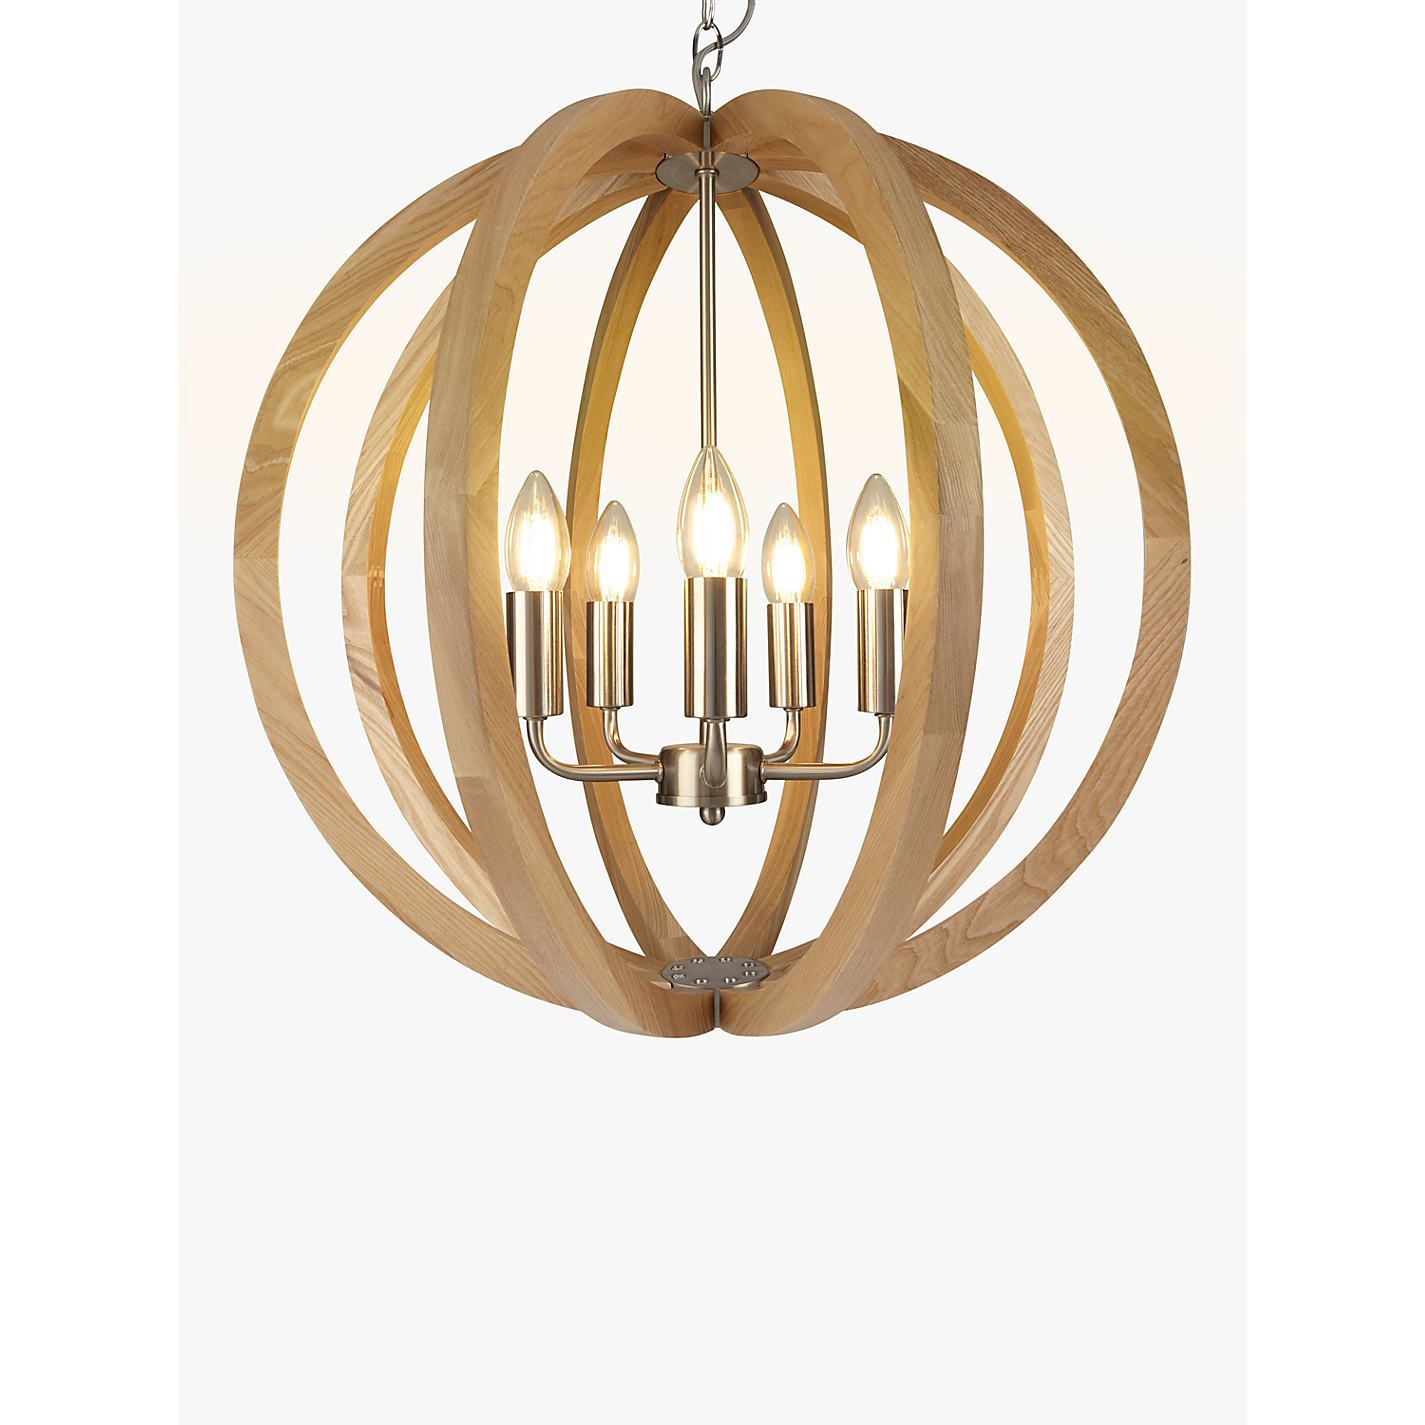 Buy john lewis lars ceiling light john lewis buy john lewis lars ceiling light online at johnlewis aloadofball Gallery